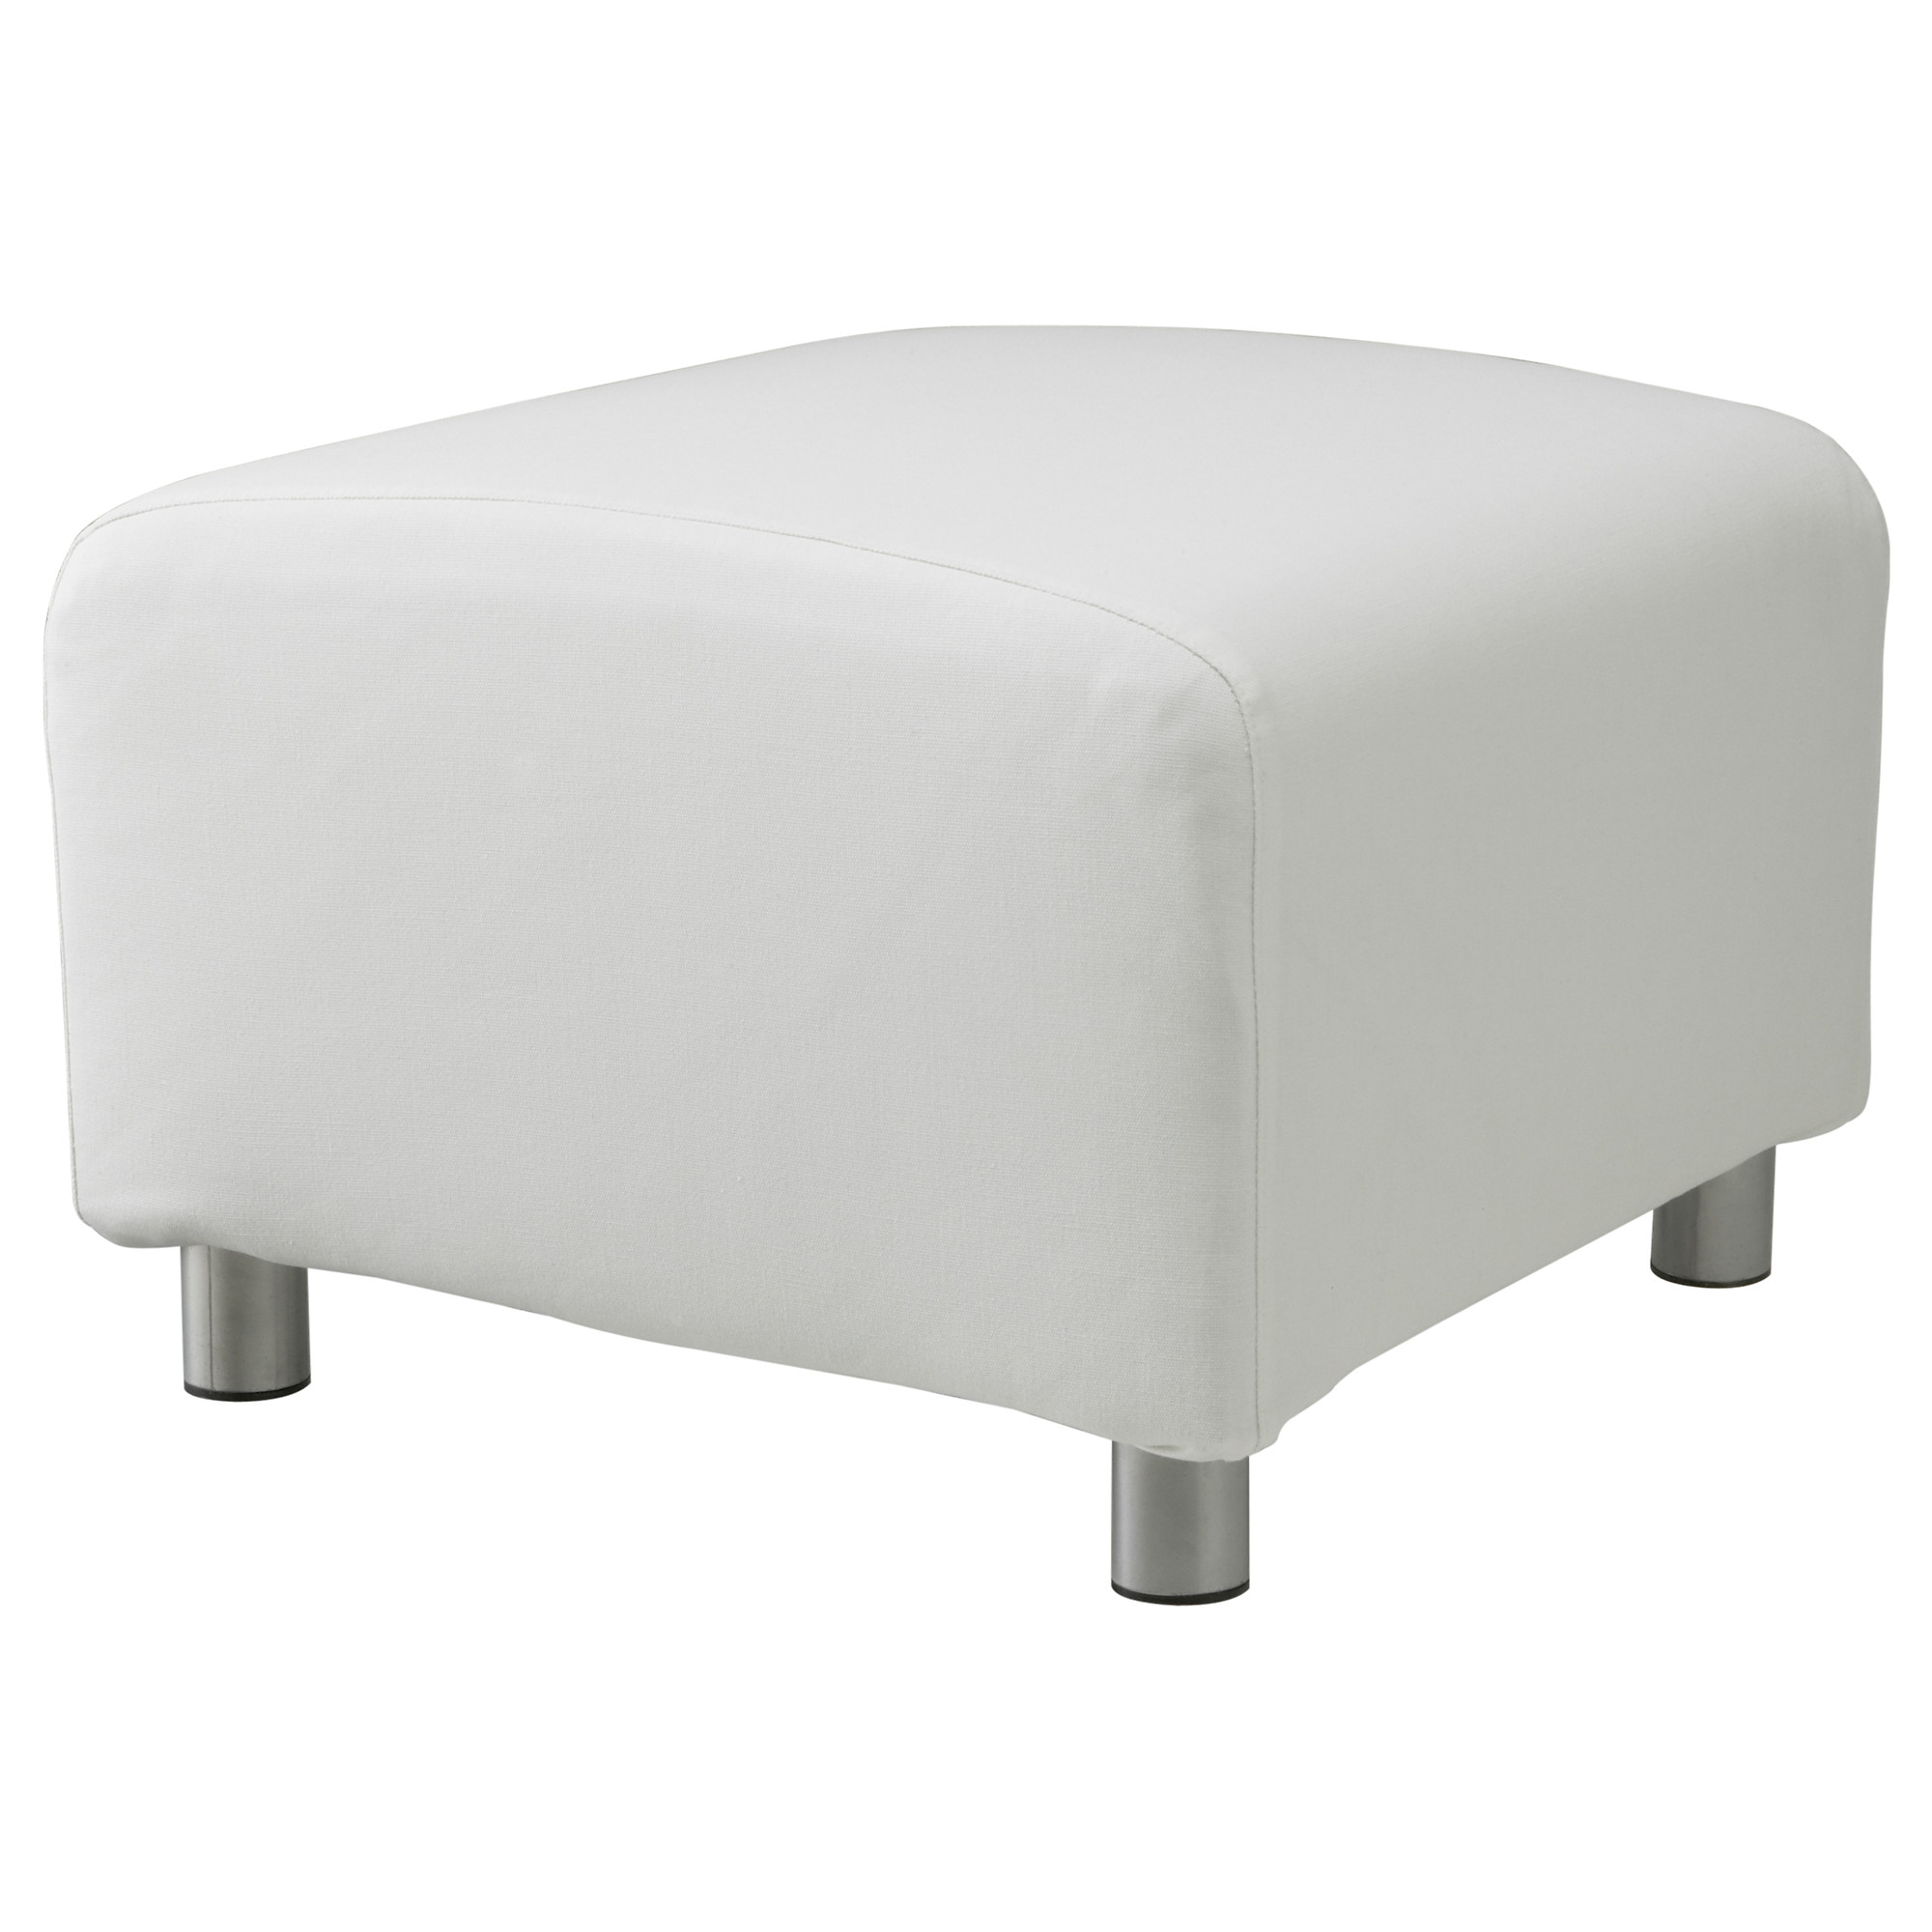 Custom slip cover for ikea klippan footstool 100 cotton sofa cover foot stool - Klippan sofa ikea ...